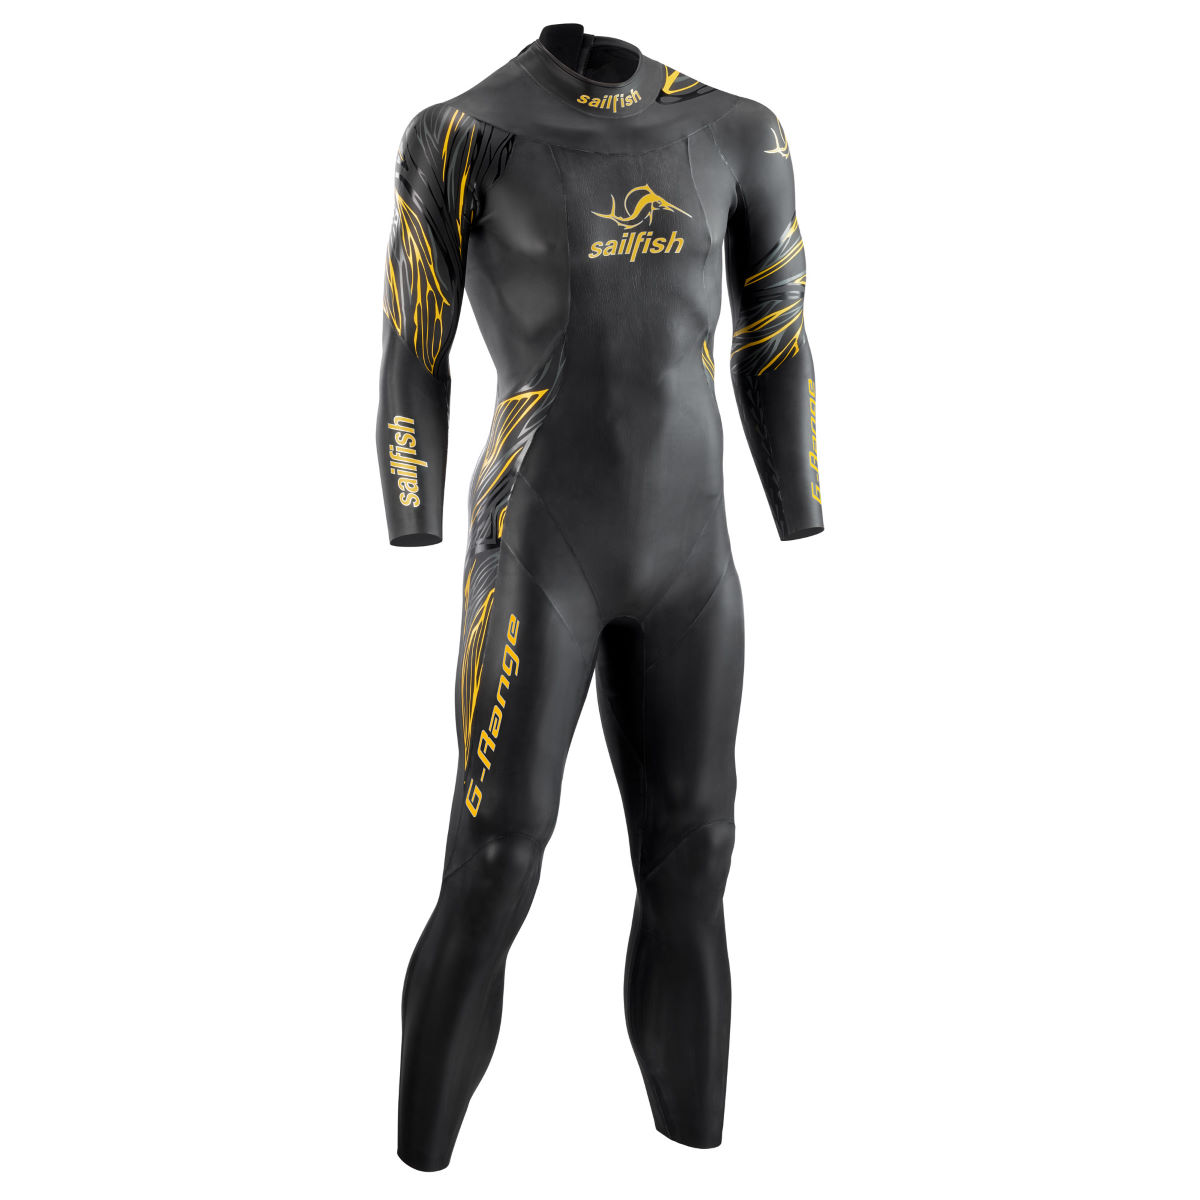 Sailfish G-Range Wetsuit - Extra Small Long Black/Yellow | Wetsuits